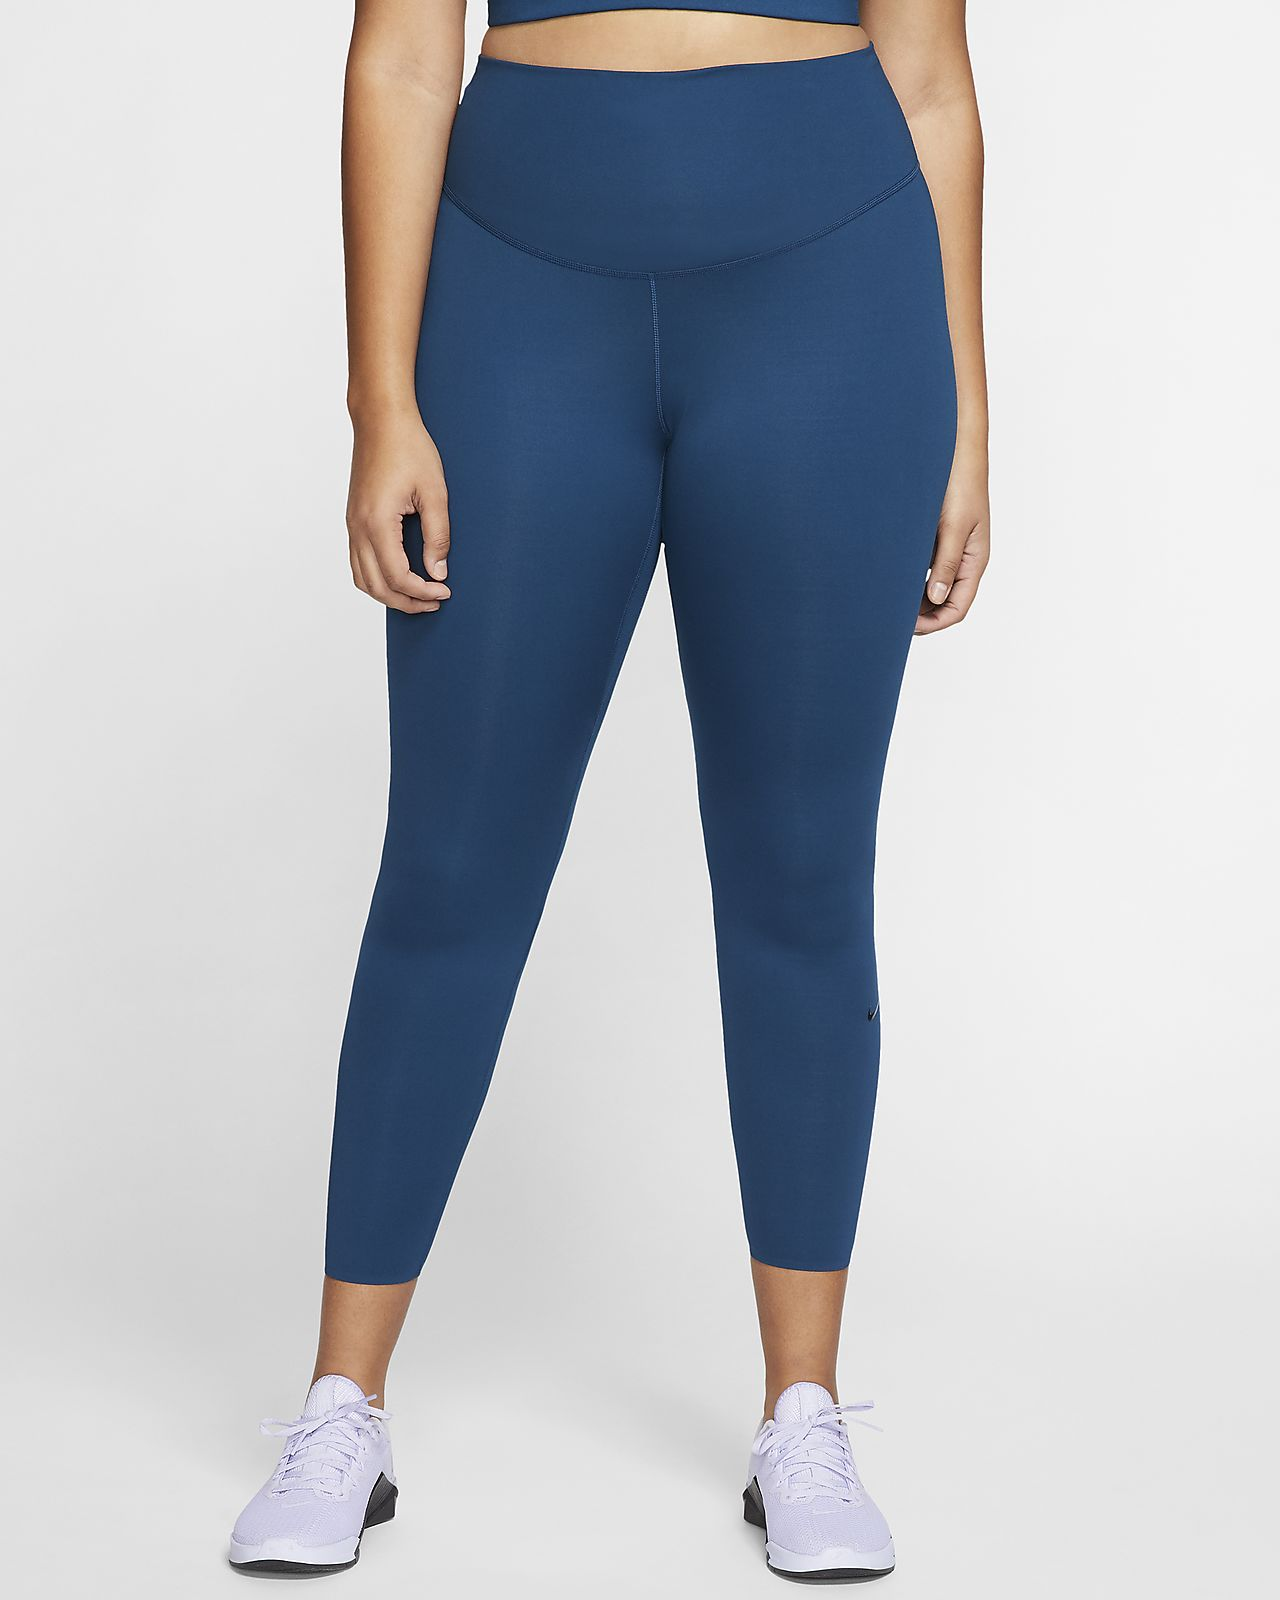 Nike One Luxe Women's Tights (Plus Size)